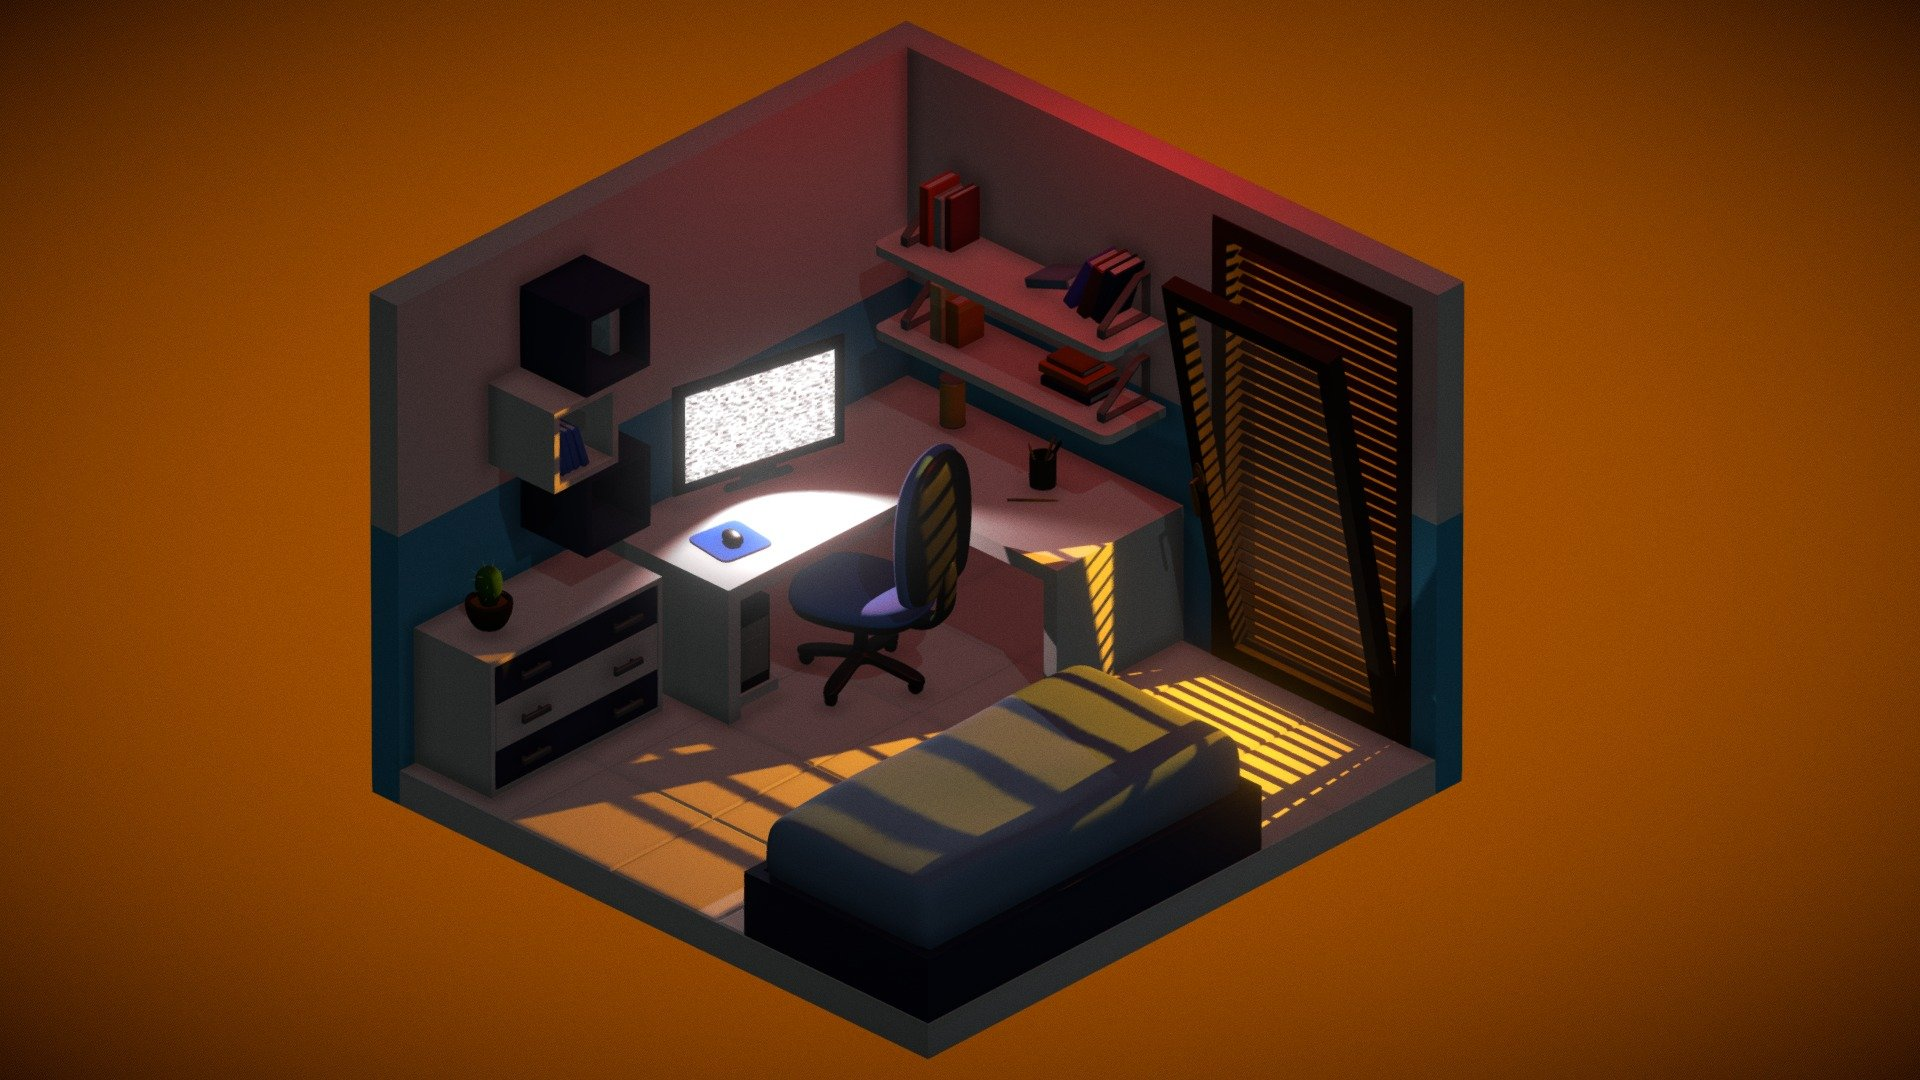 Isometric Bedroom Download Free 3d Model By Gianmarco Gianmart E5216b4